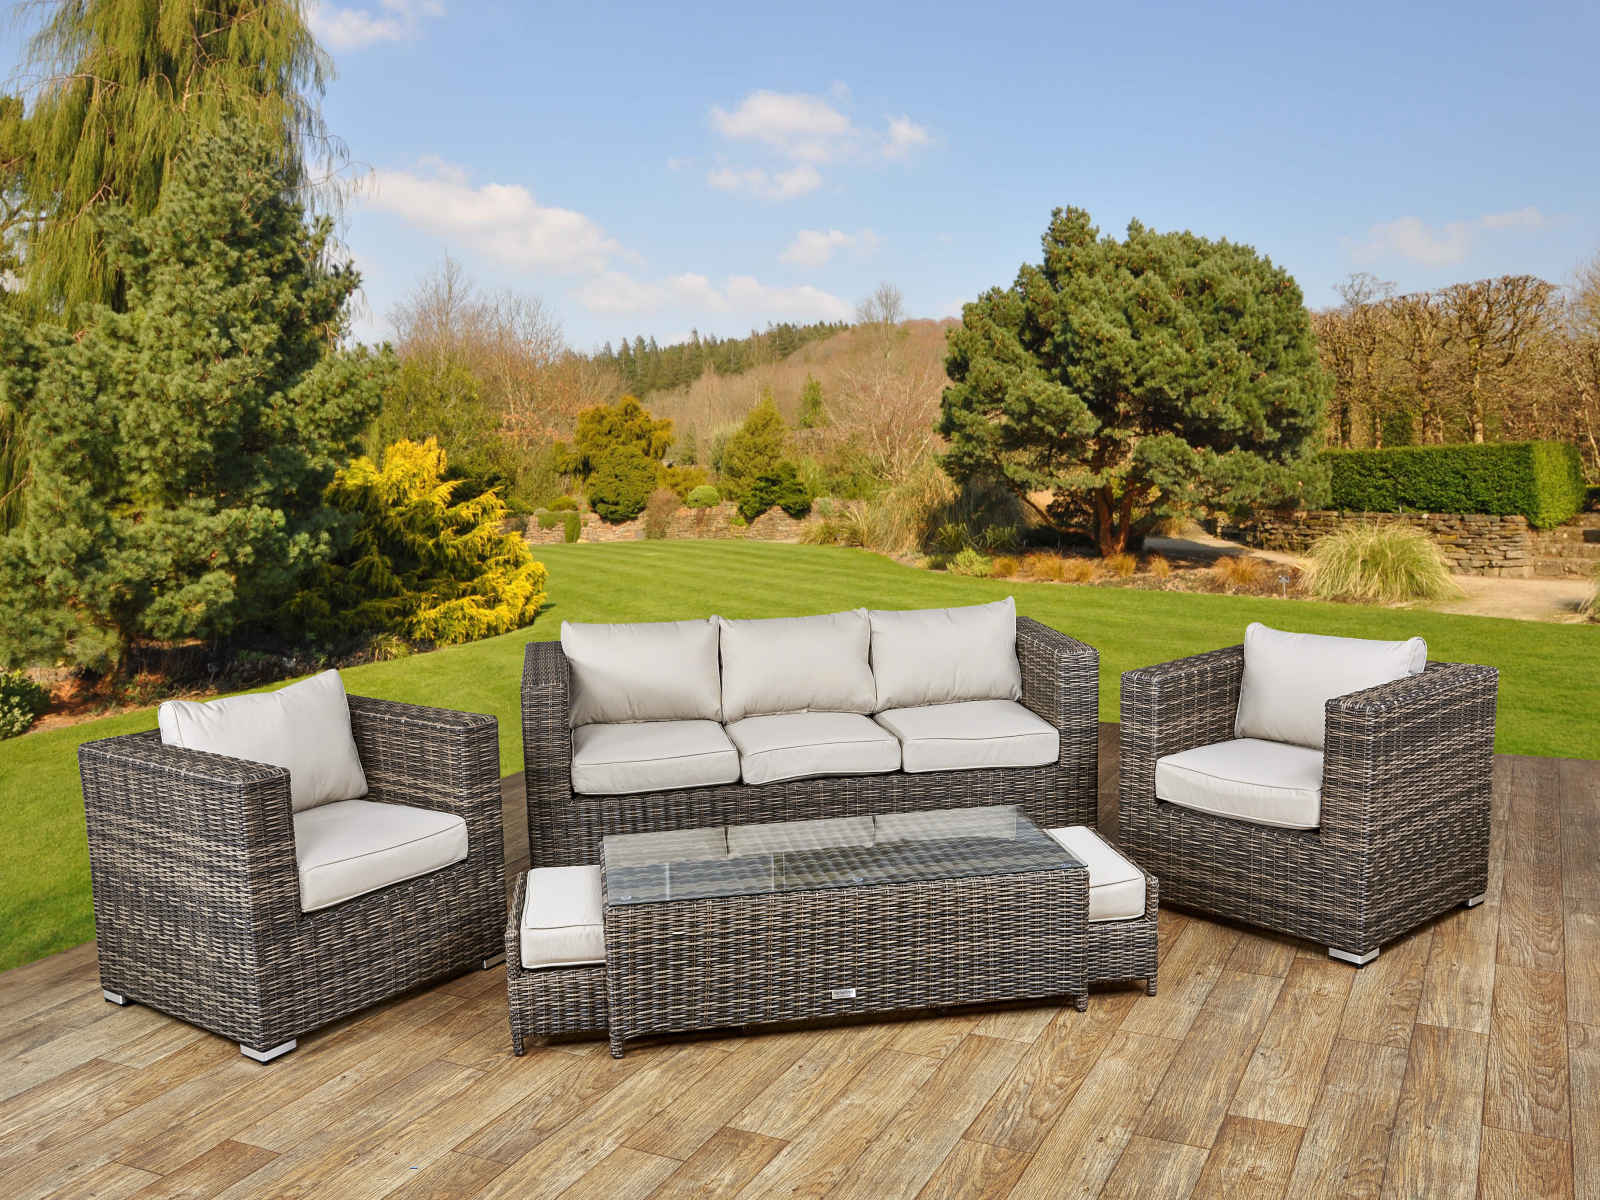 Ascot 3 Seater Sofa Set Truffle and Champagne